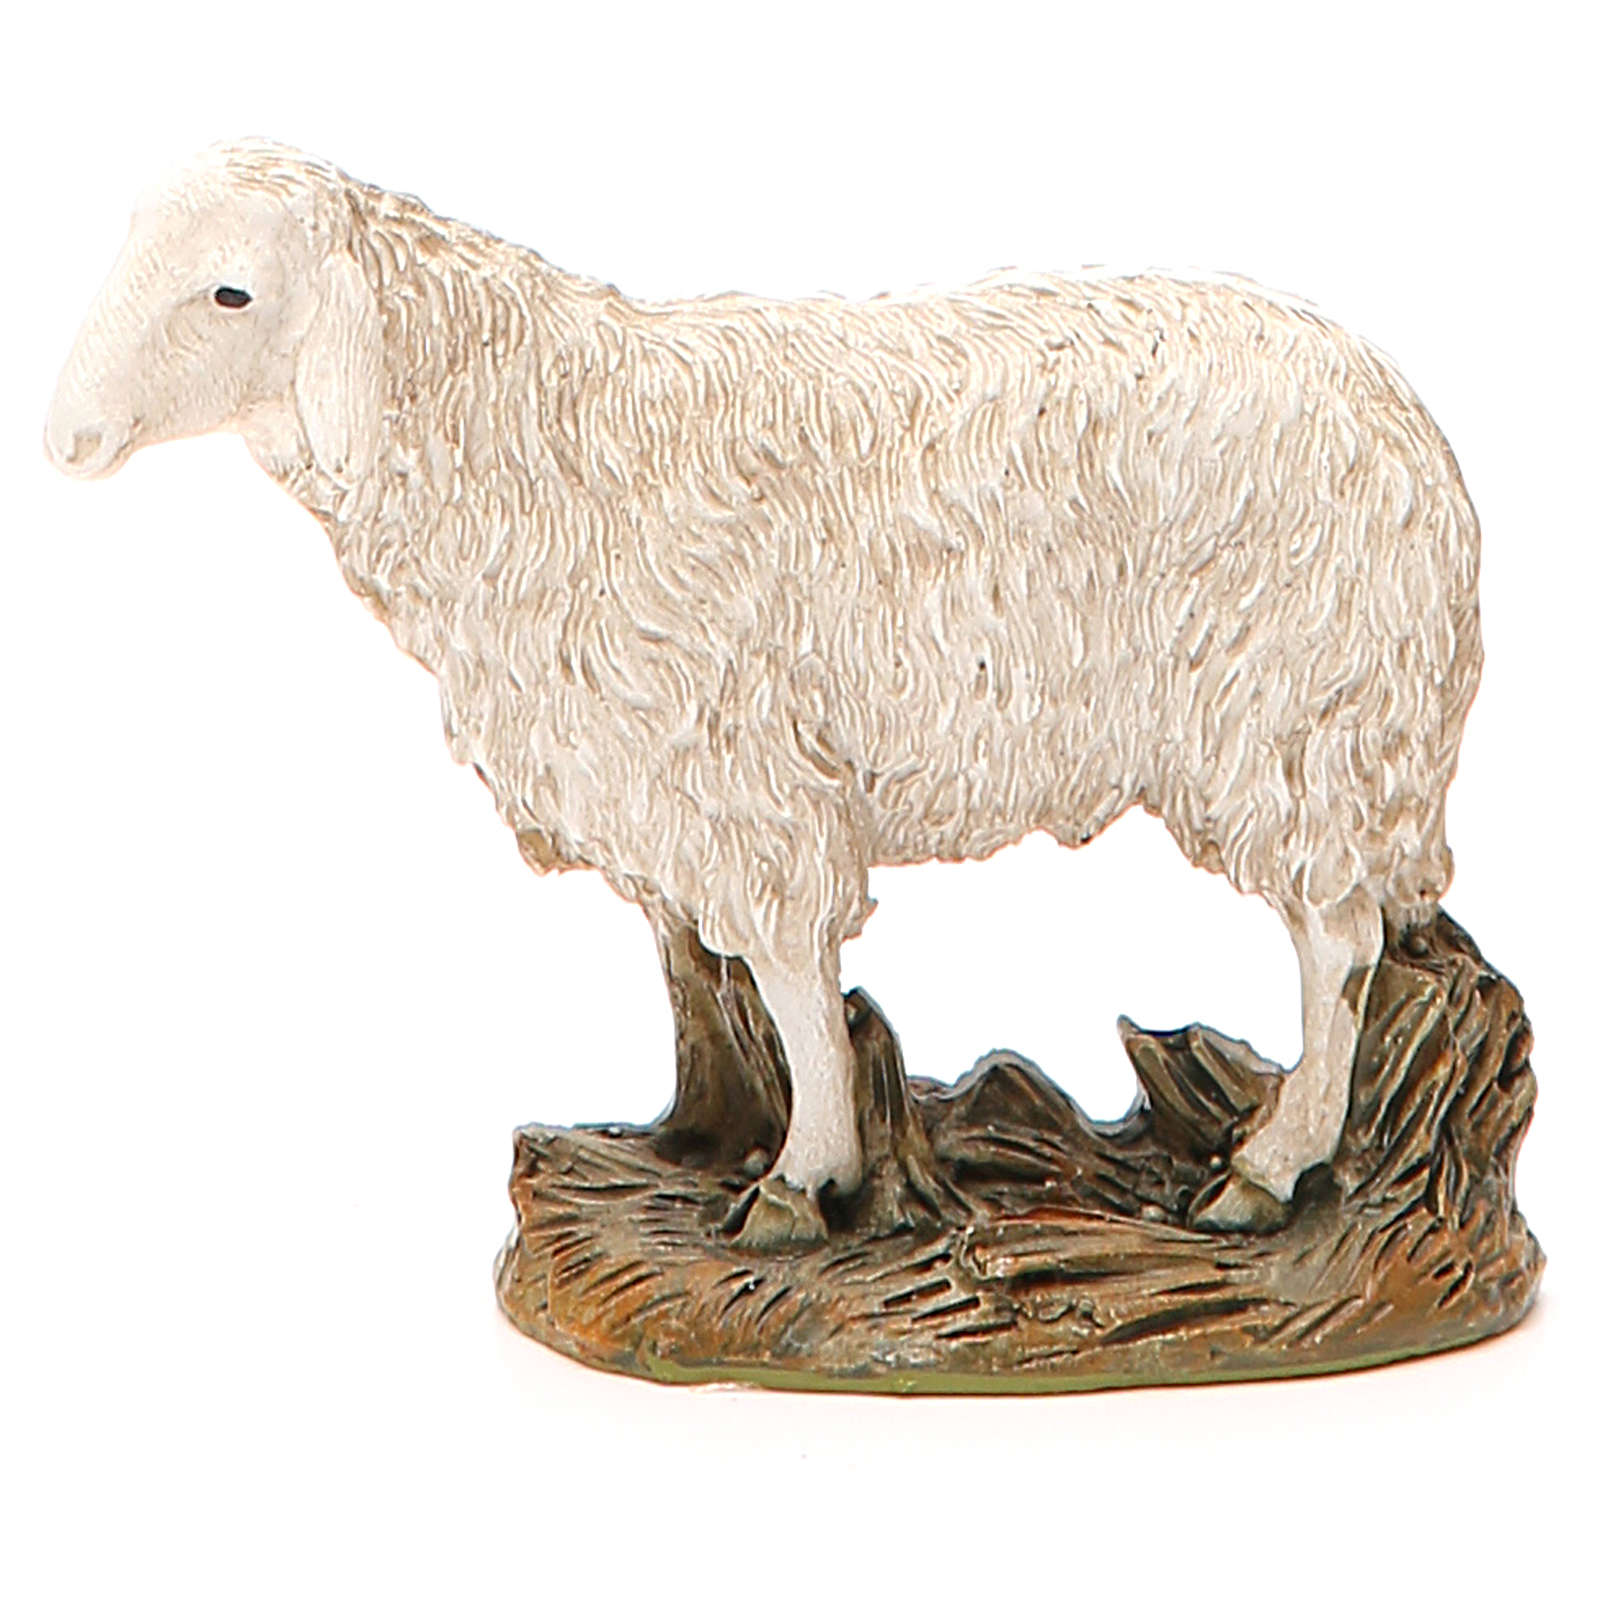 Sheep looking up in painted resin, 12cm Martino Landi Nativity 3